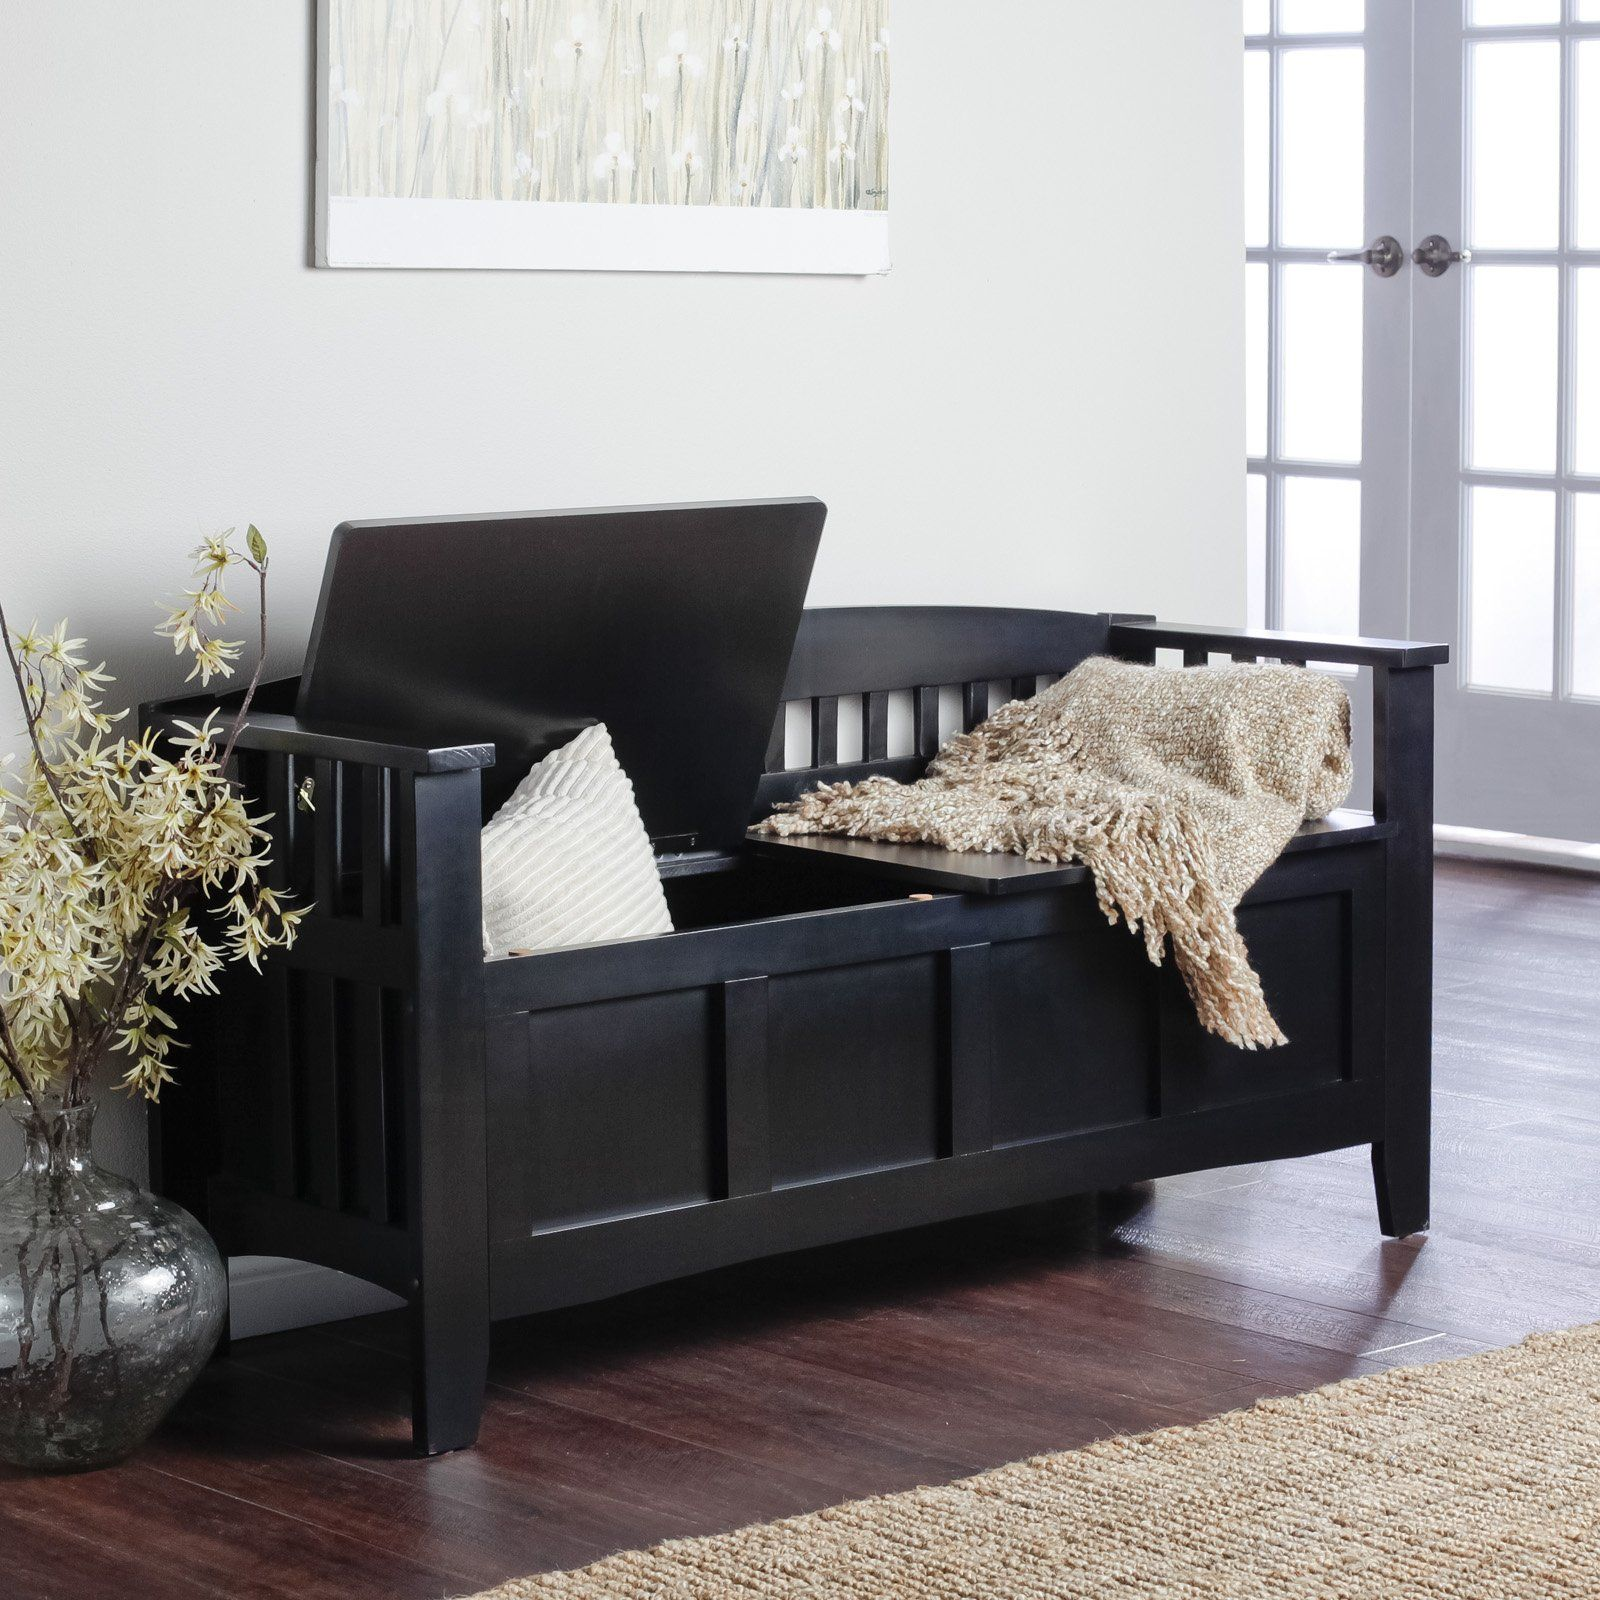 Hunter Storage Bench Black Indoor Benches At Benches Ideas For My Dream Home Pinterest